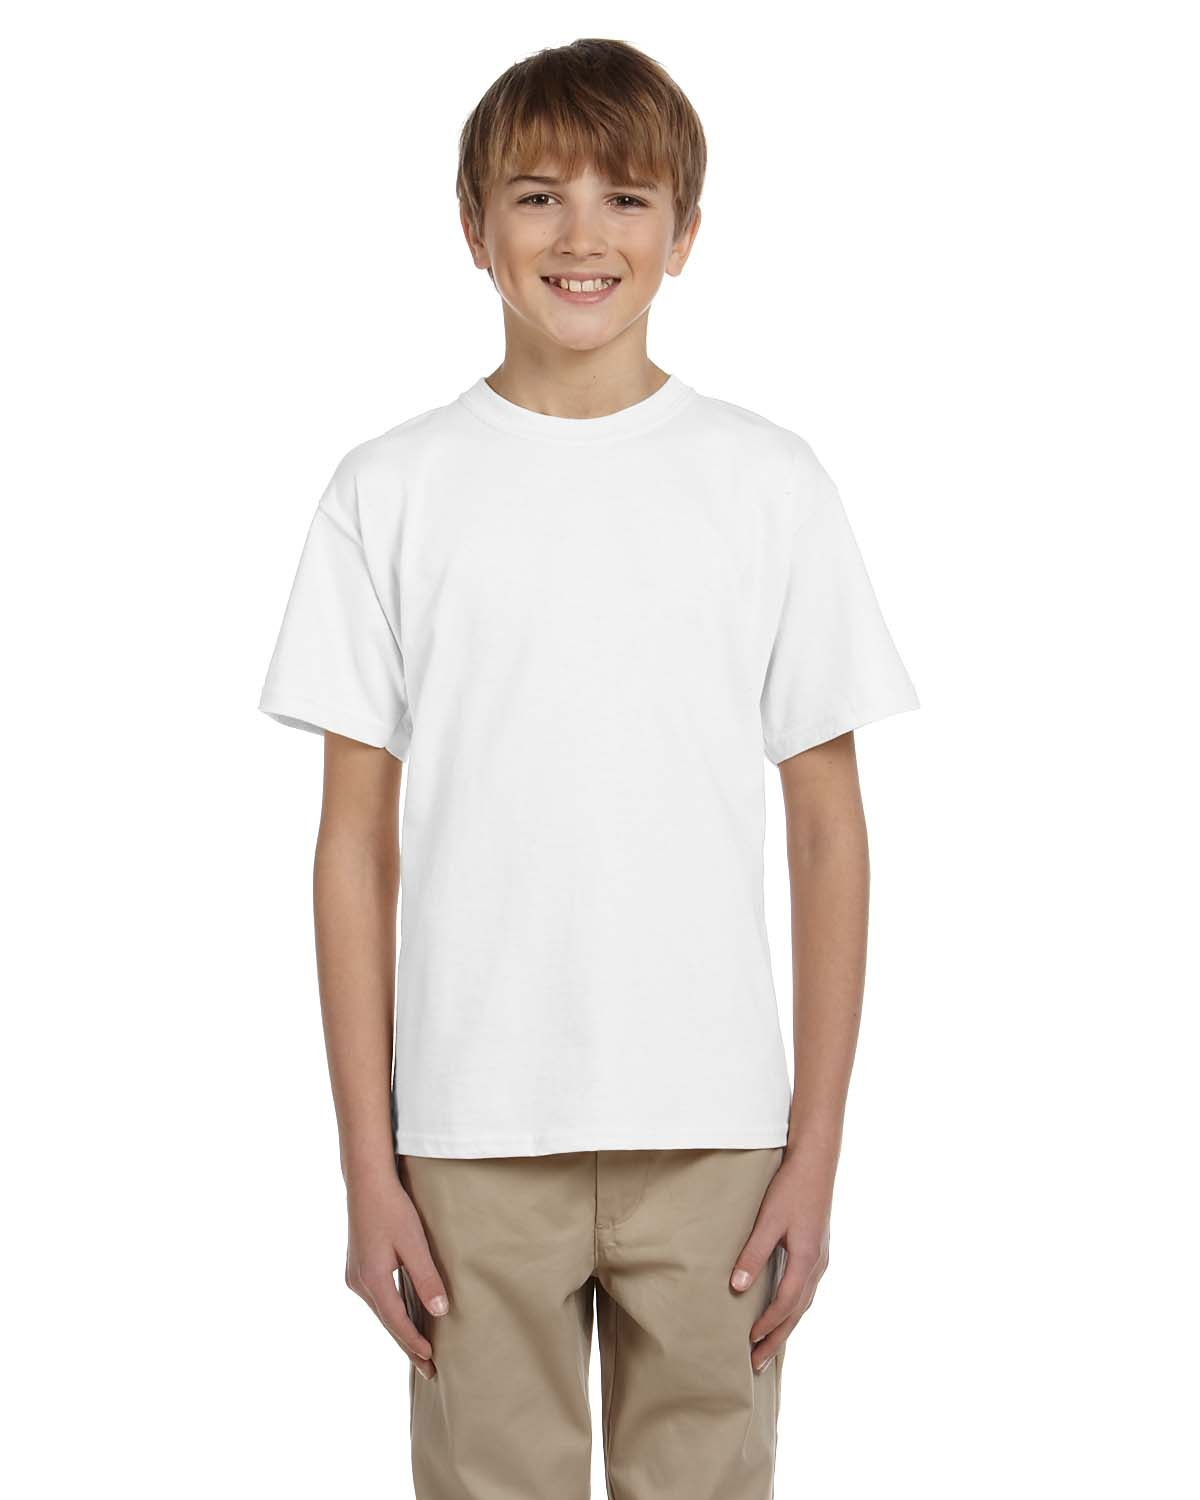 Blank kid 39 s white t shirt you customize it for White blank t shirt